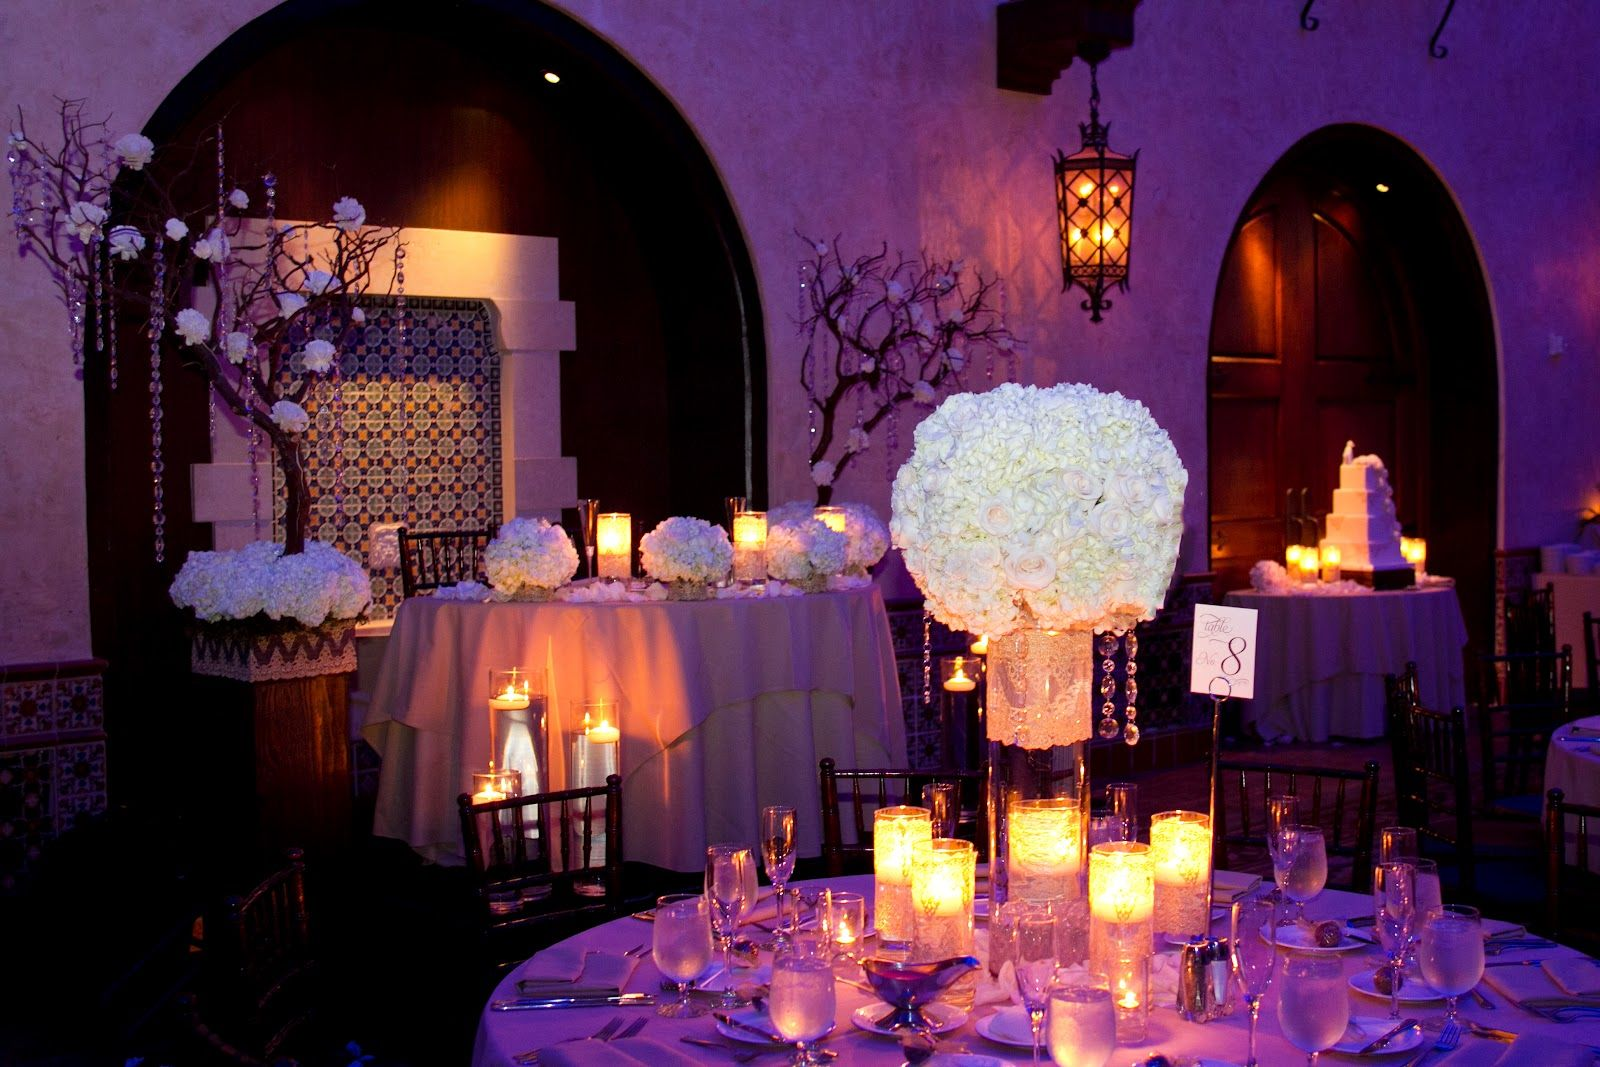 Wedding decorations wedding reception ideas  moody and romantic  Wedding Decor Itus All About the Space